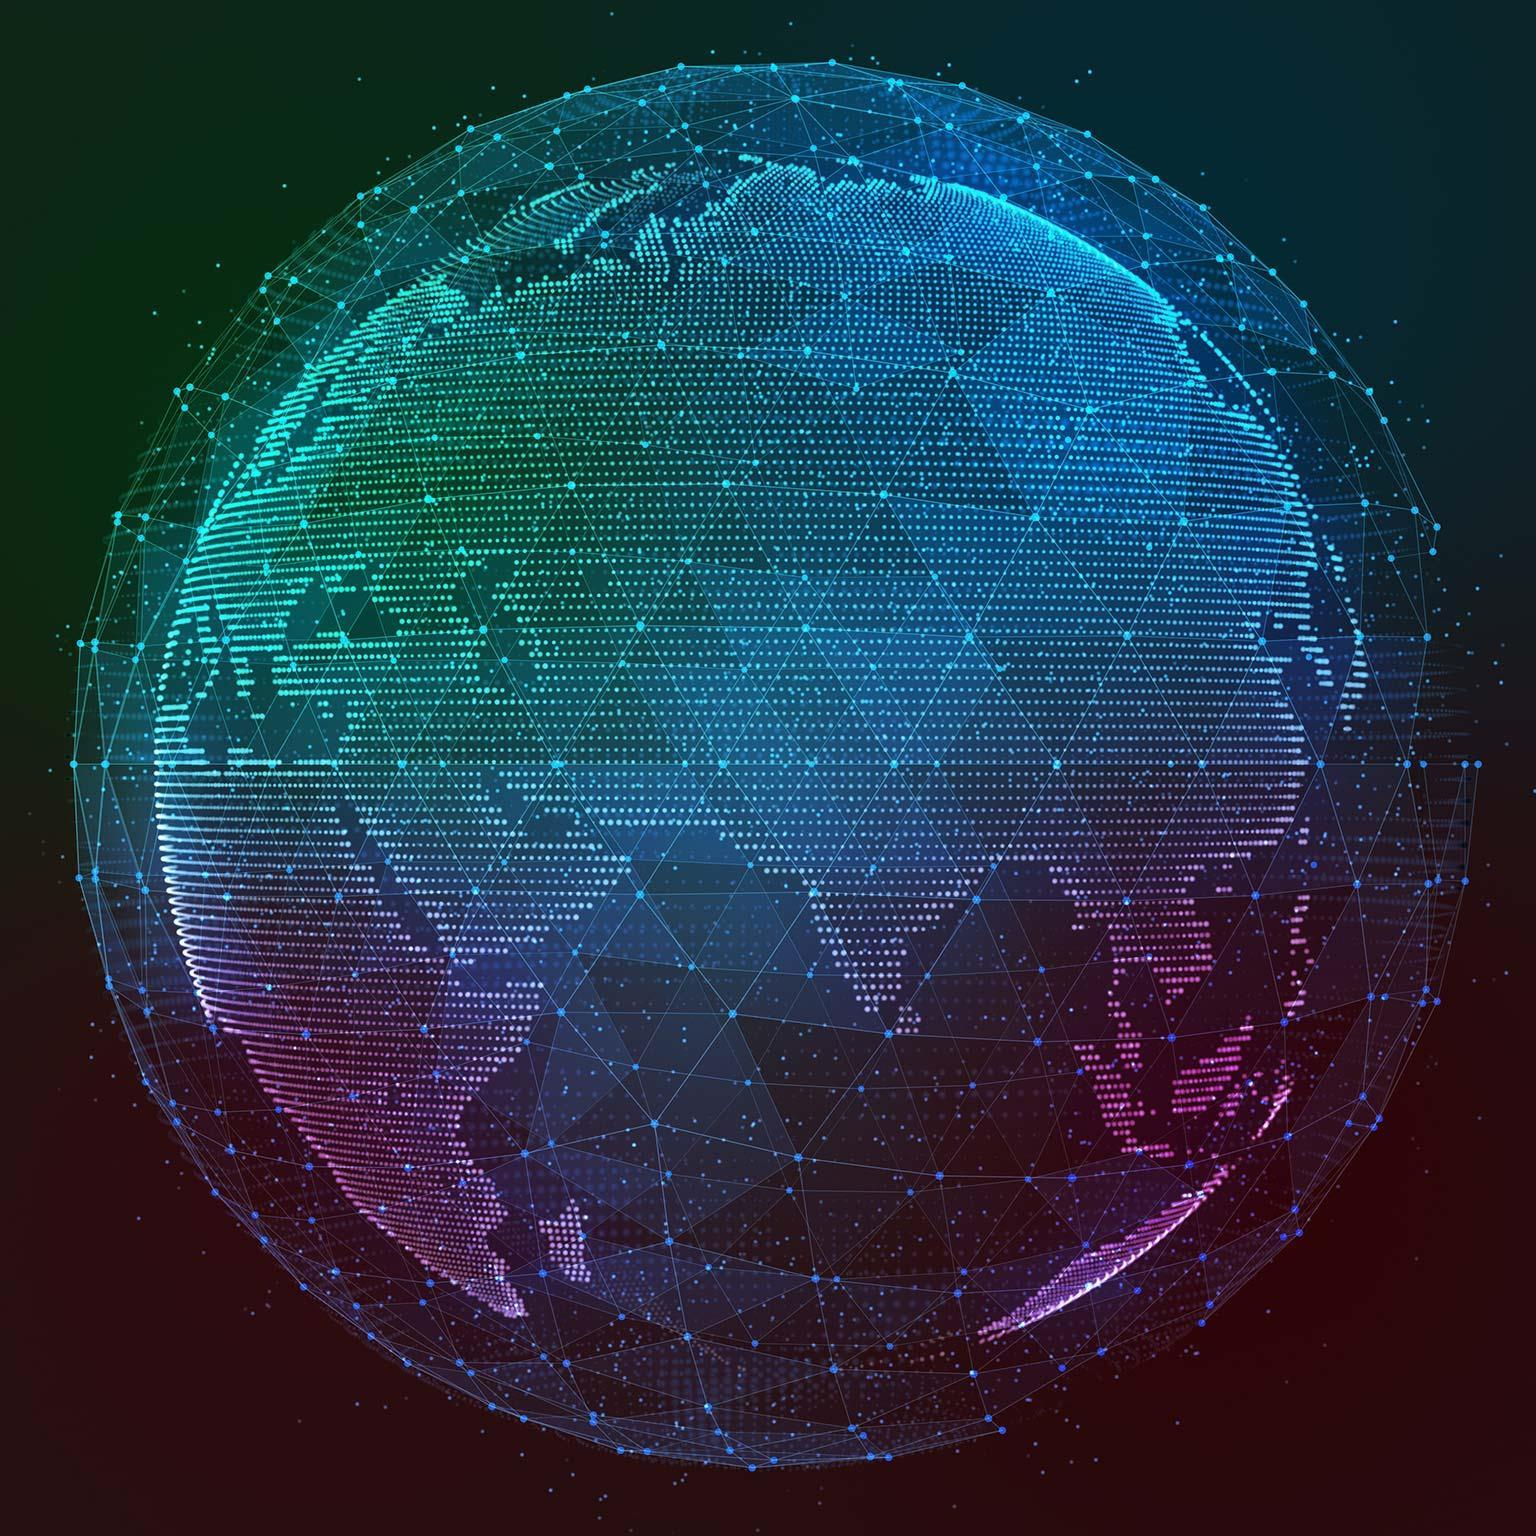 Digital globalization: The new era of global flows | McKinsey